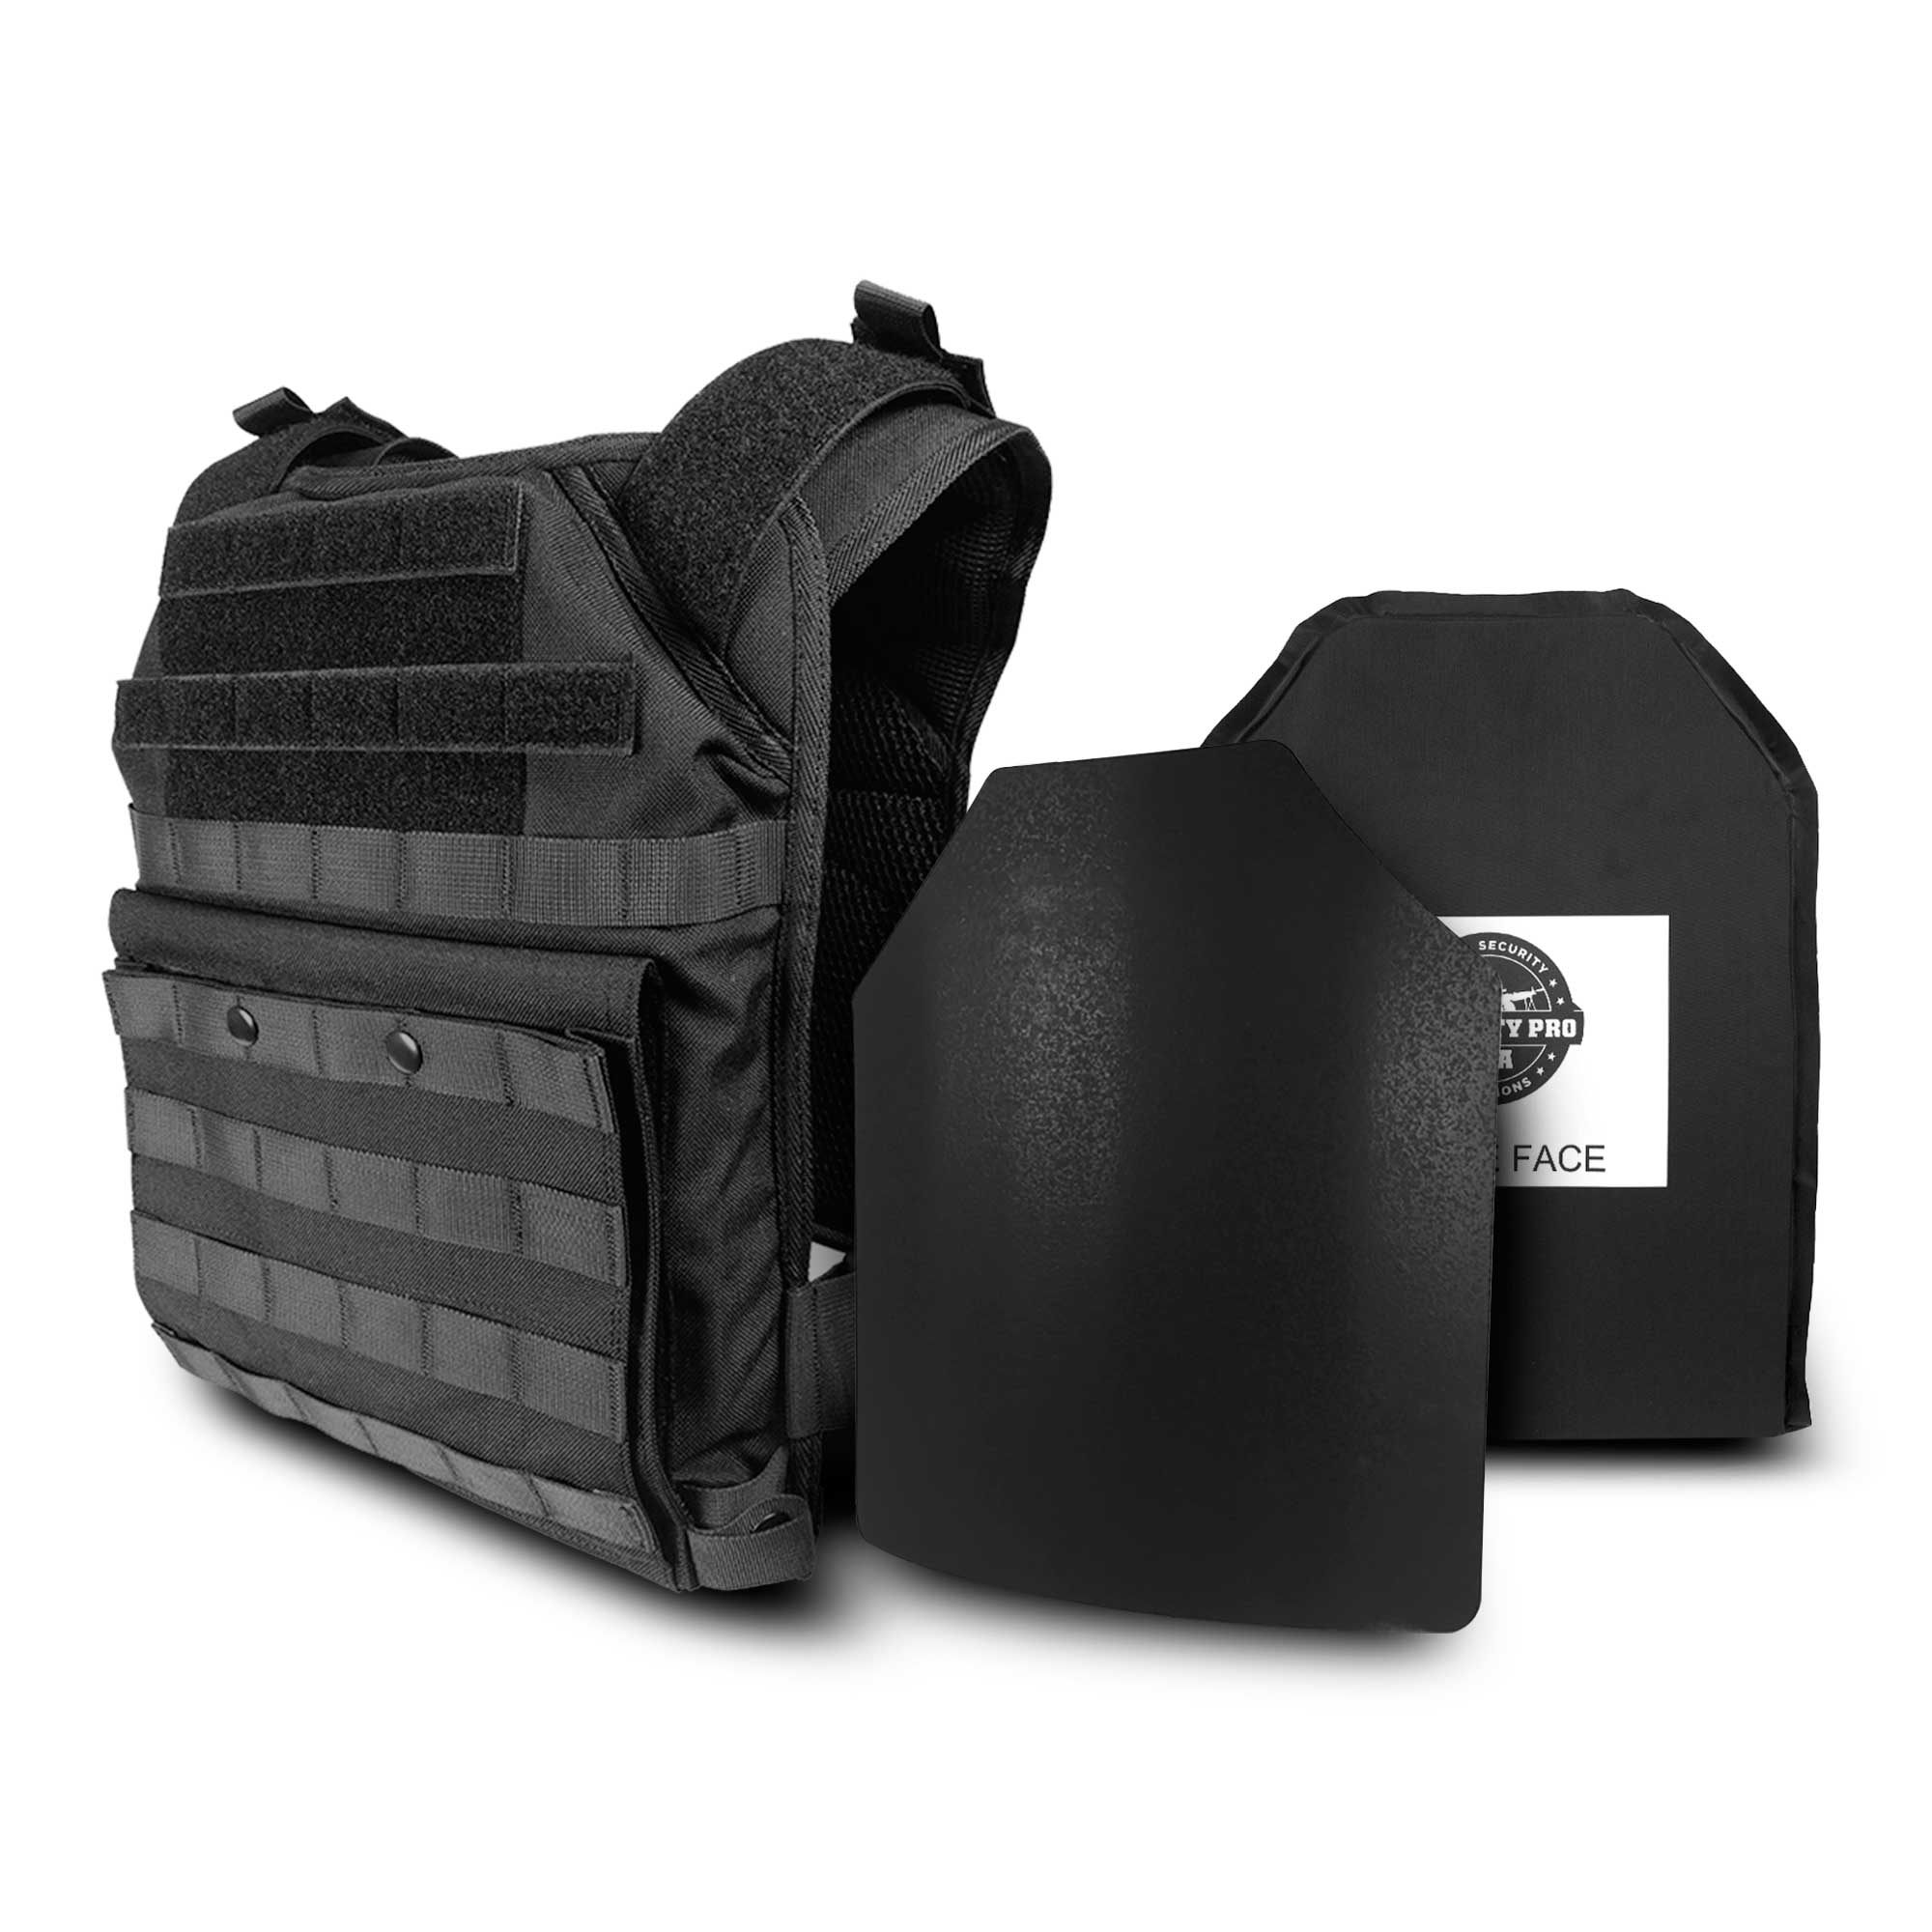 SecPro Shooter's Special Body Armor Bundle